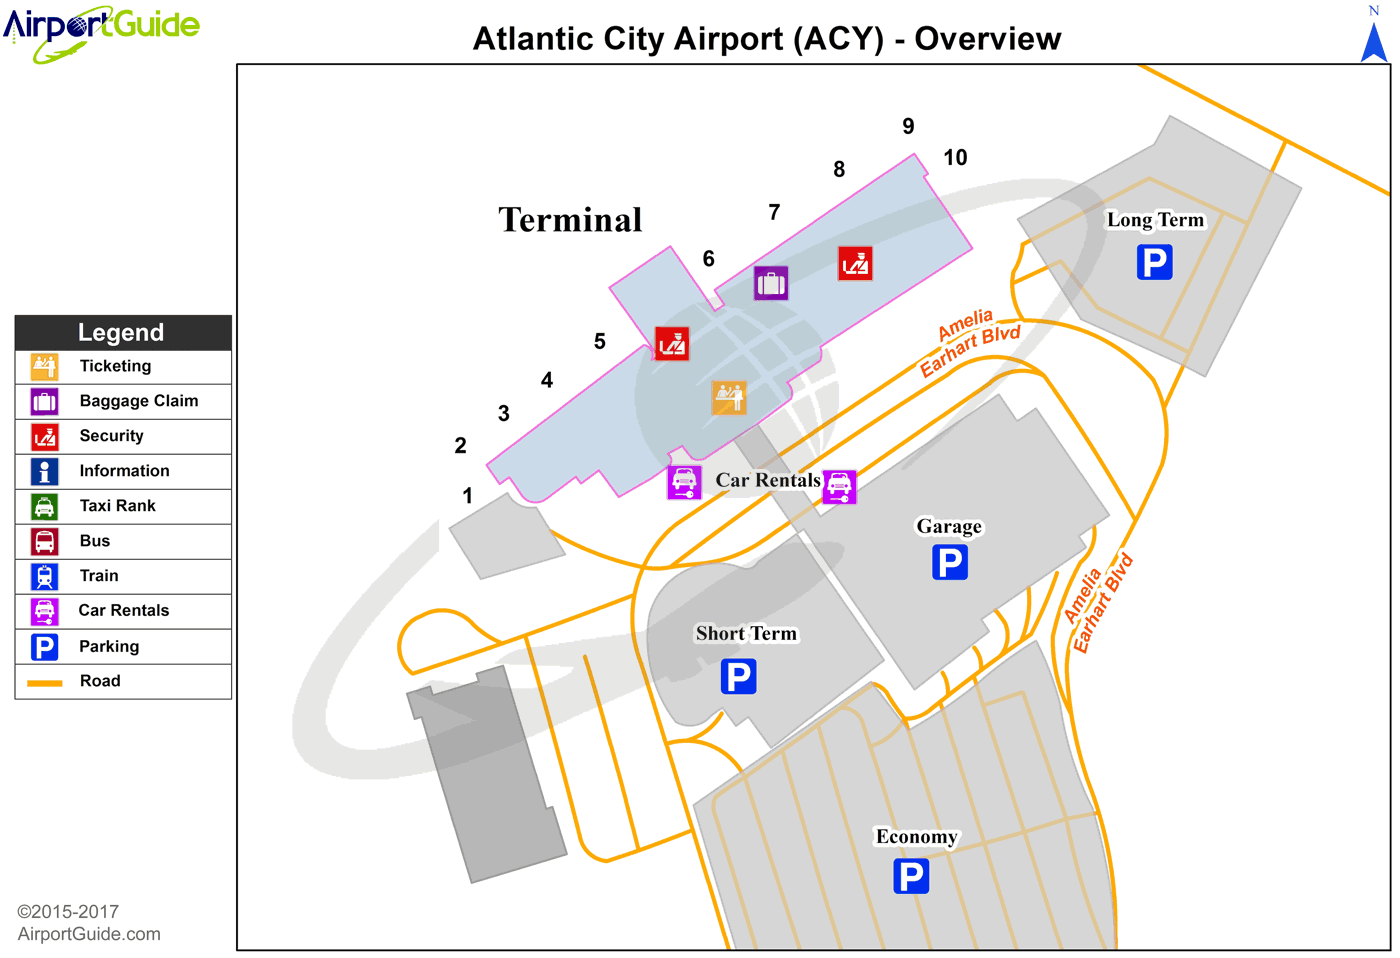 Atlantic City - Atlantic City International (ACY) Airport Terminal Map - Overview